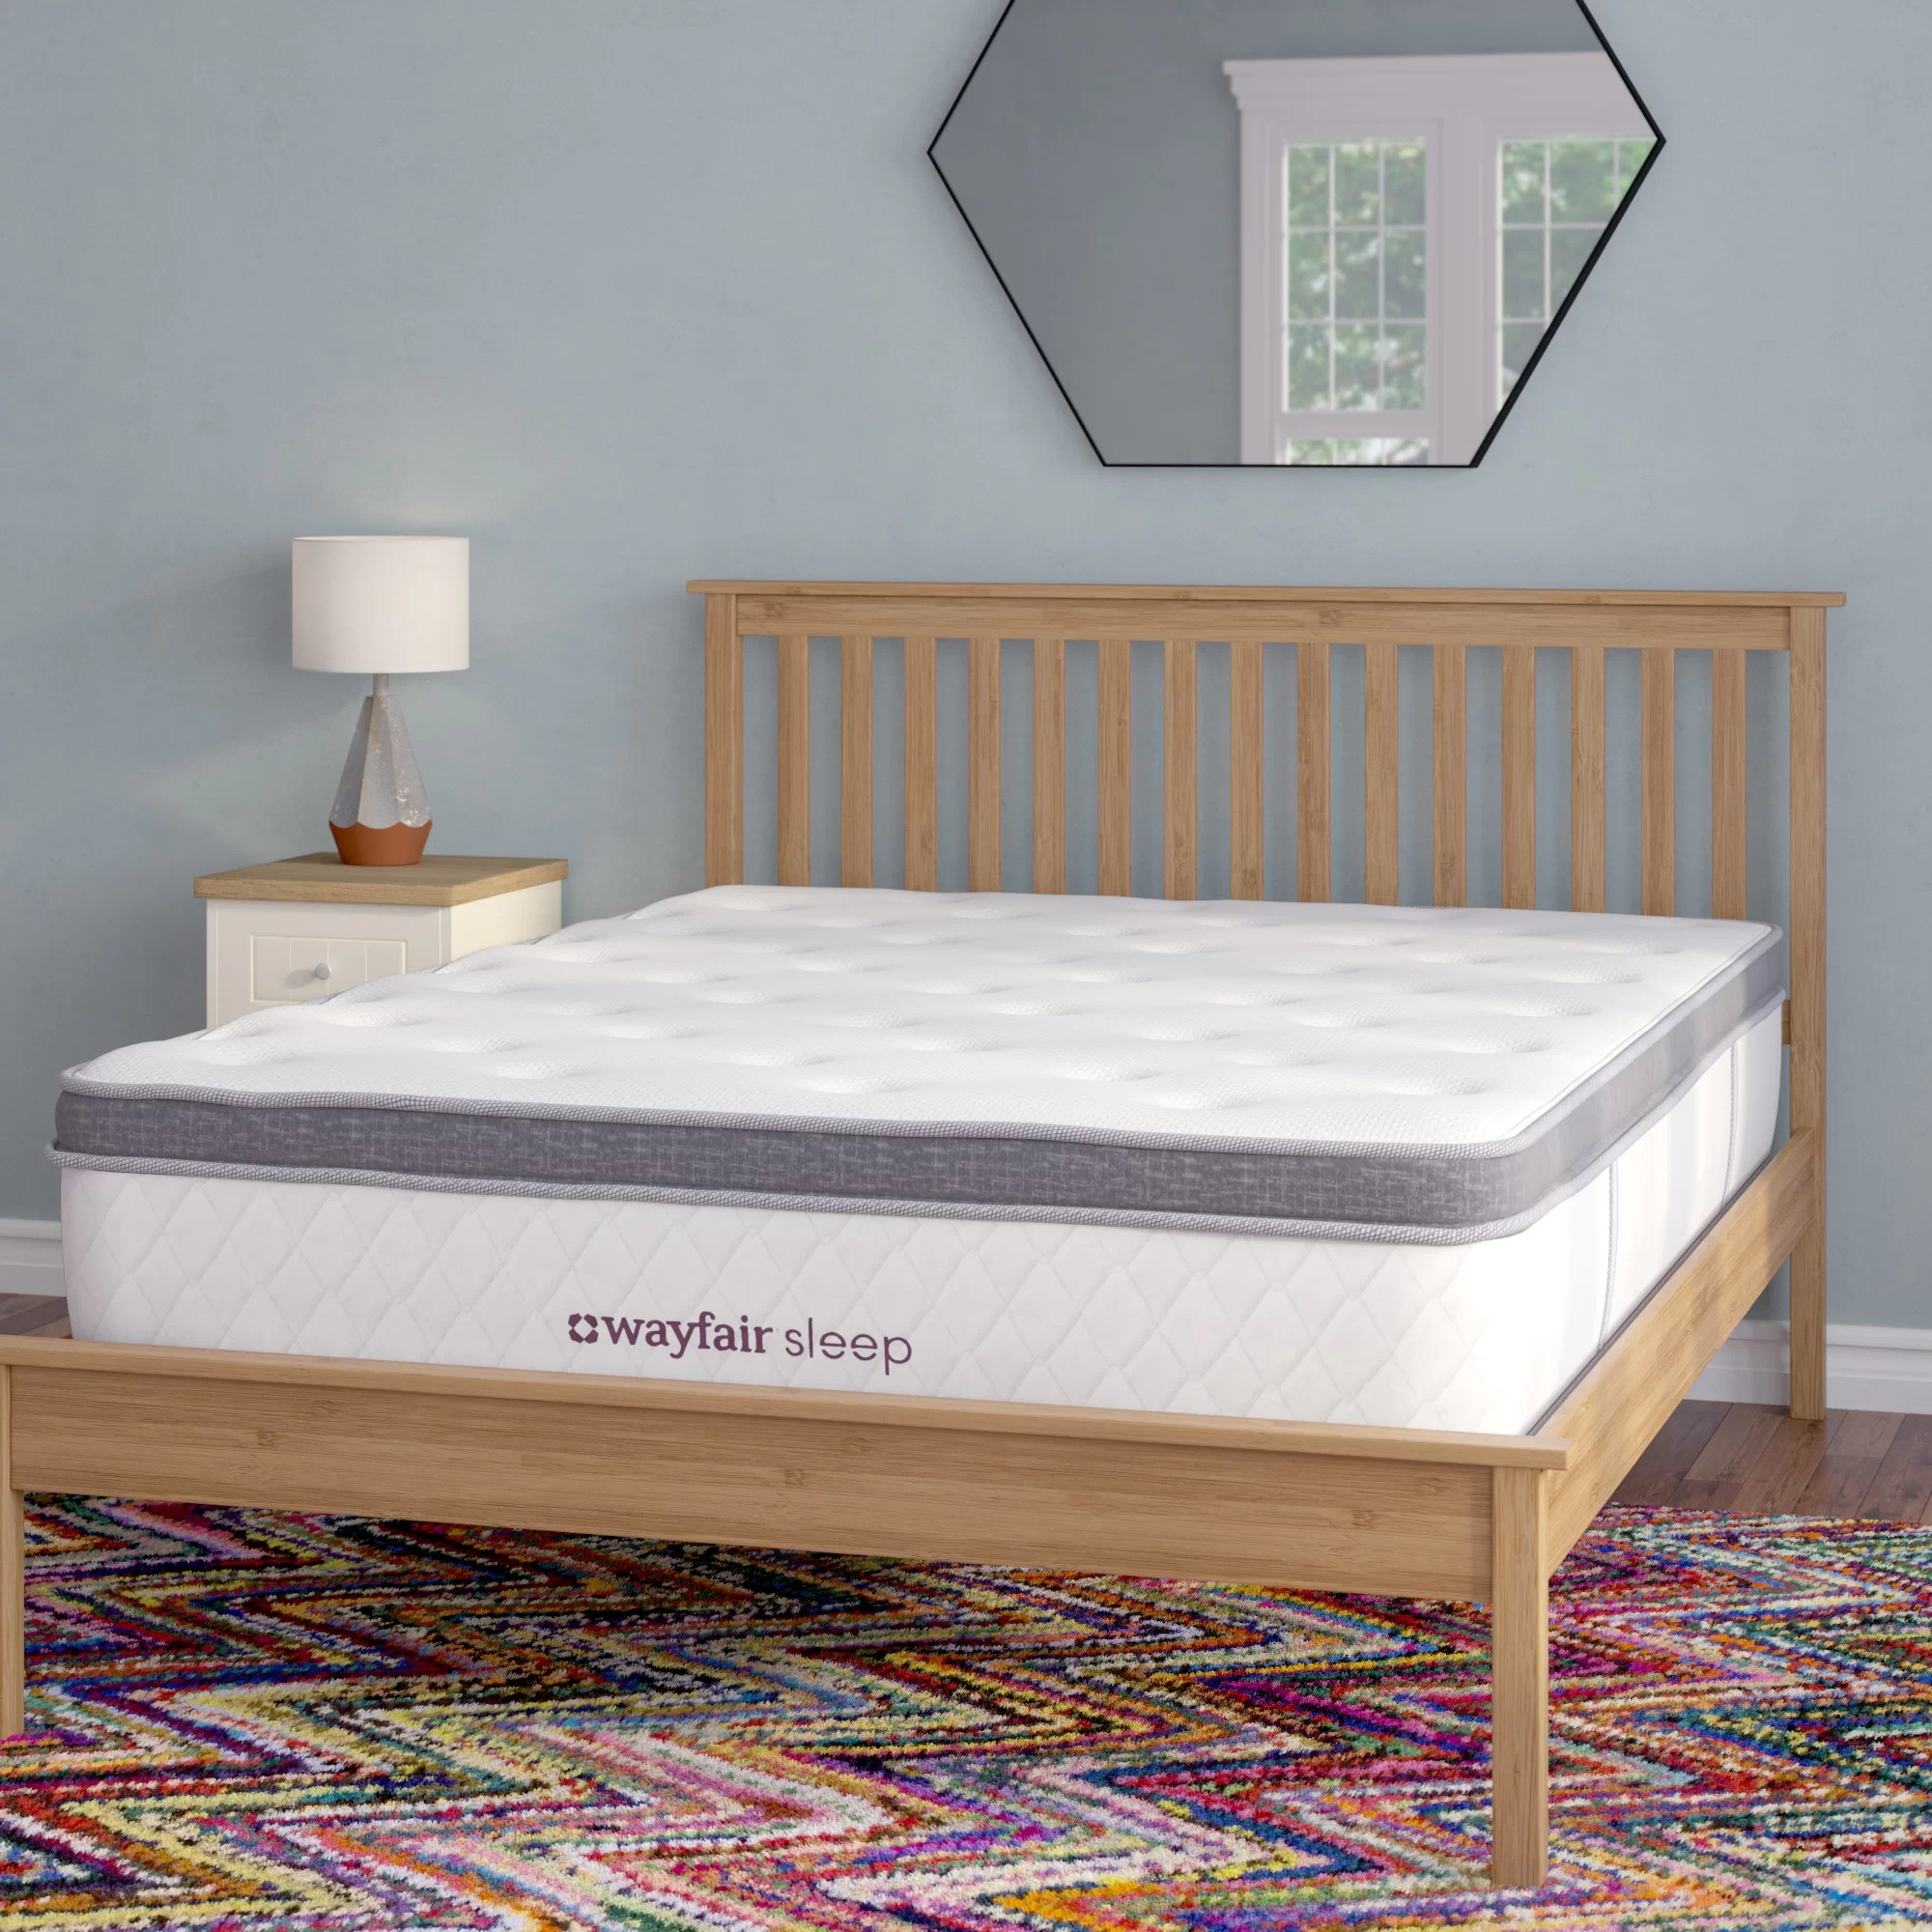 Bedroom Mattress Wayfair Sleep 13